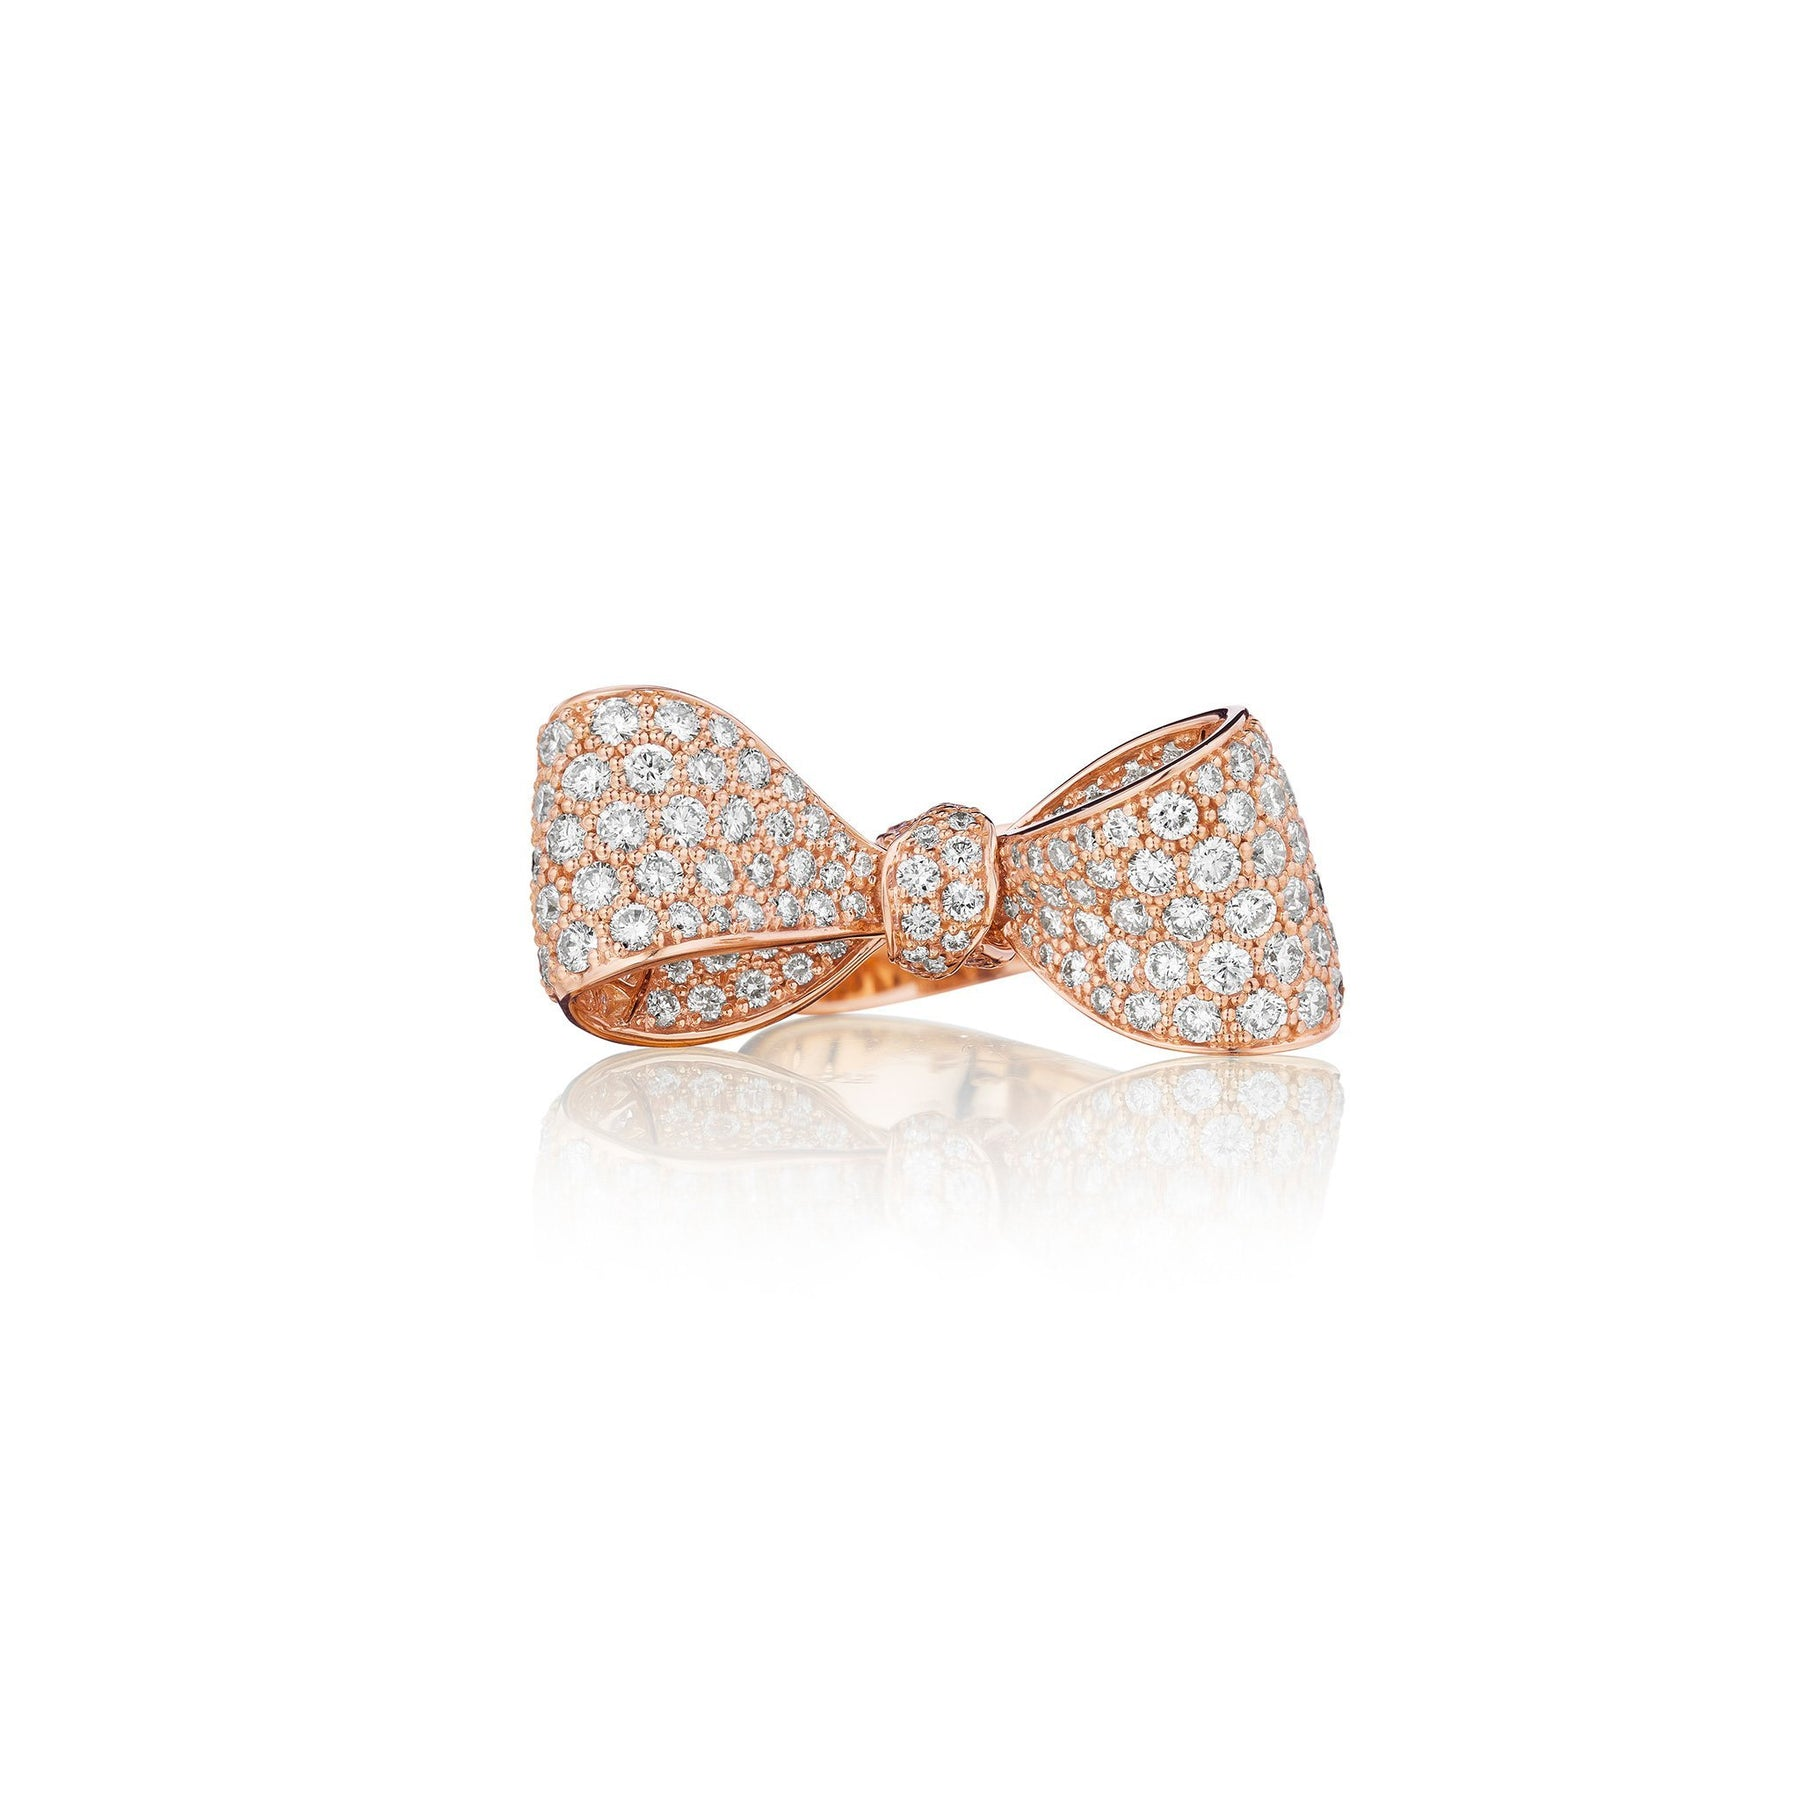 Mimi-So-Medium-Diamond-Bow-Ring_18k Rose Gold